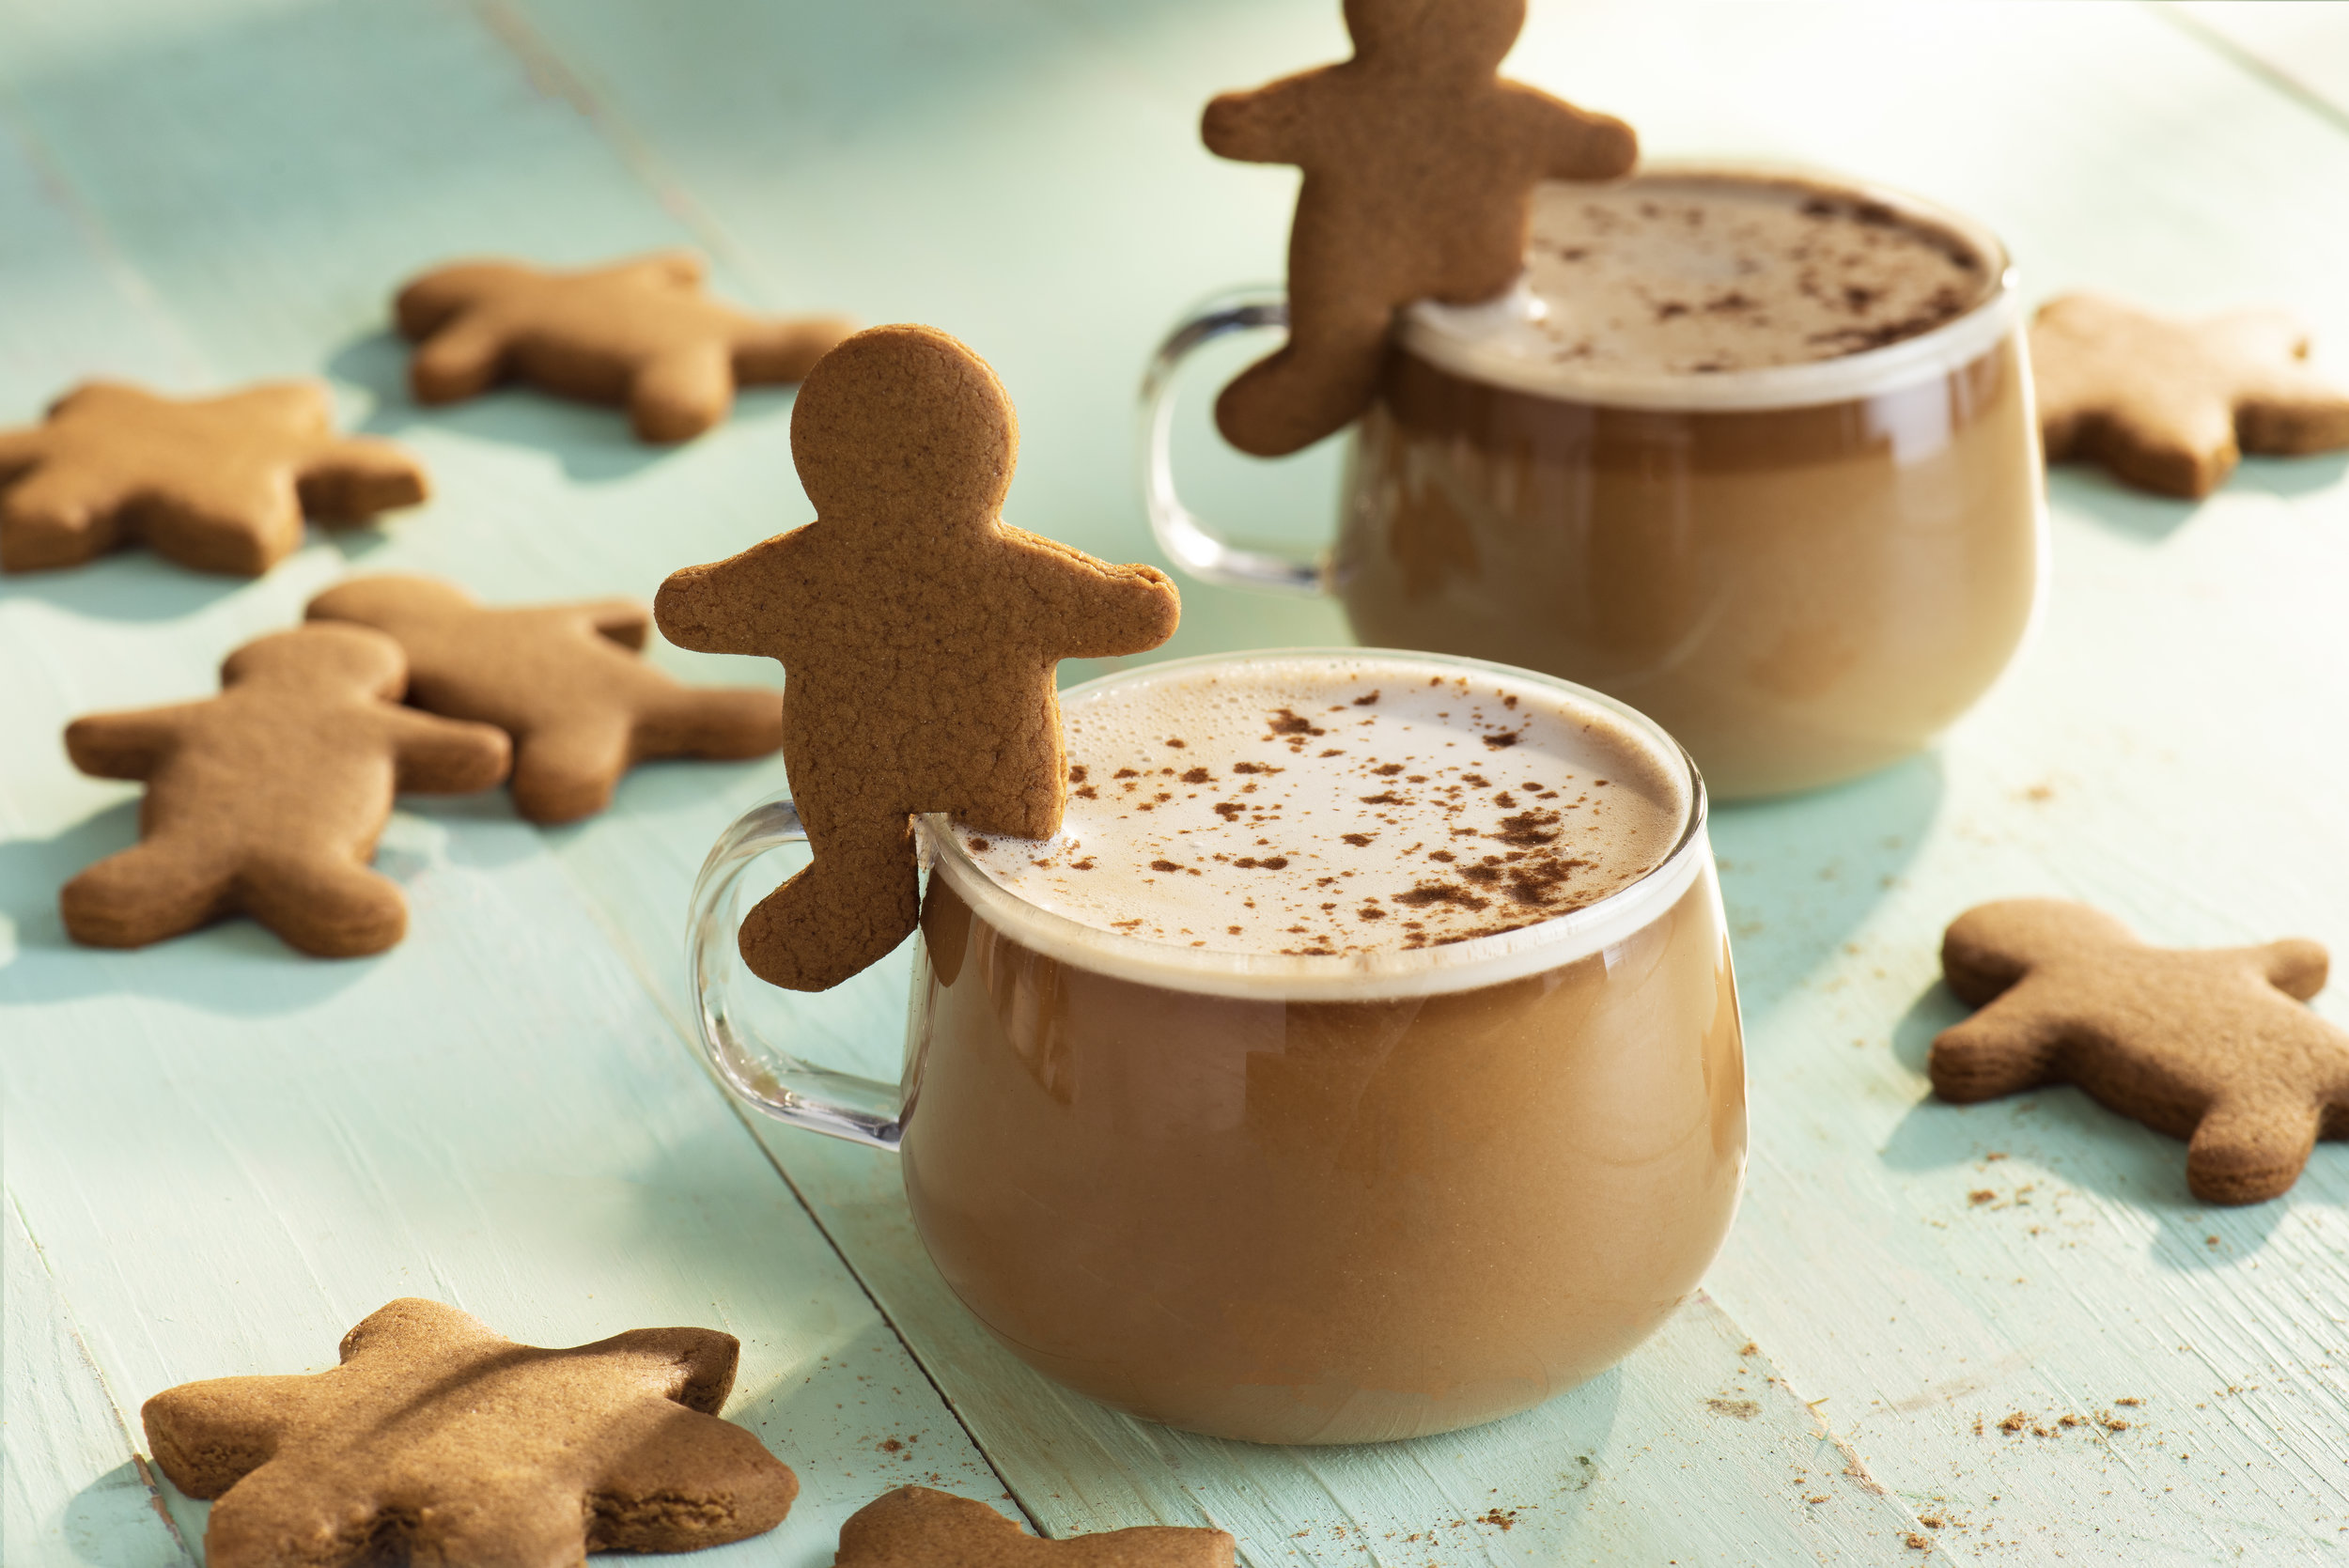 Gingerbread Oat Milk Latte